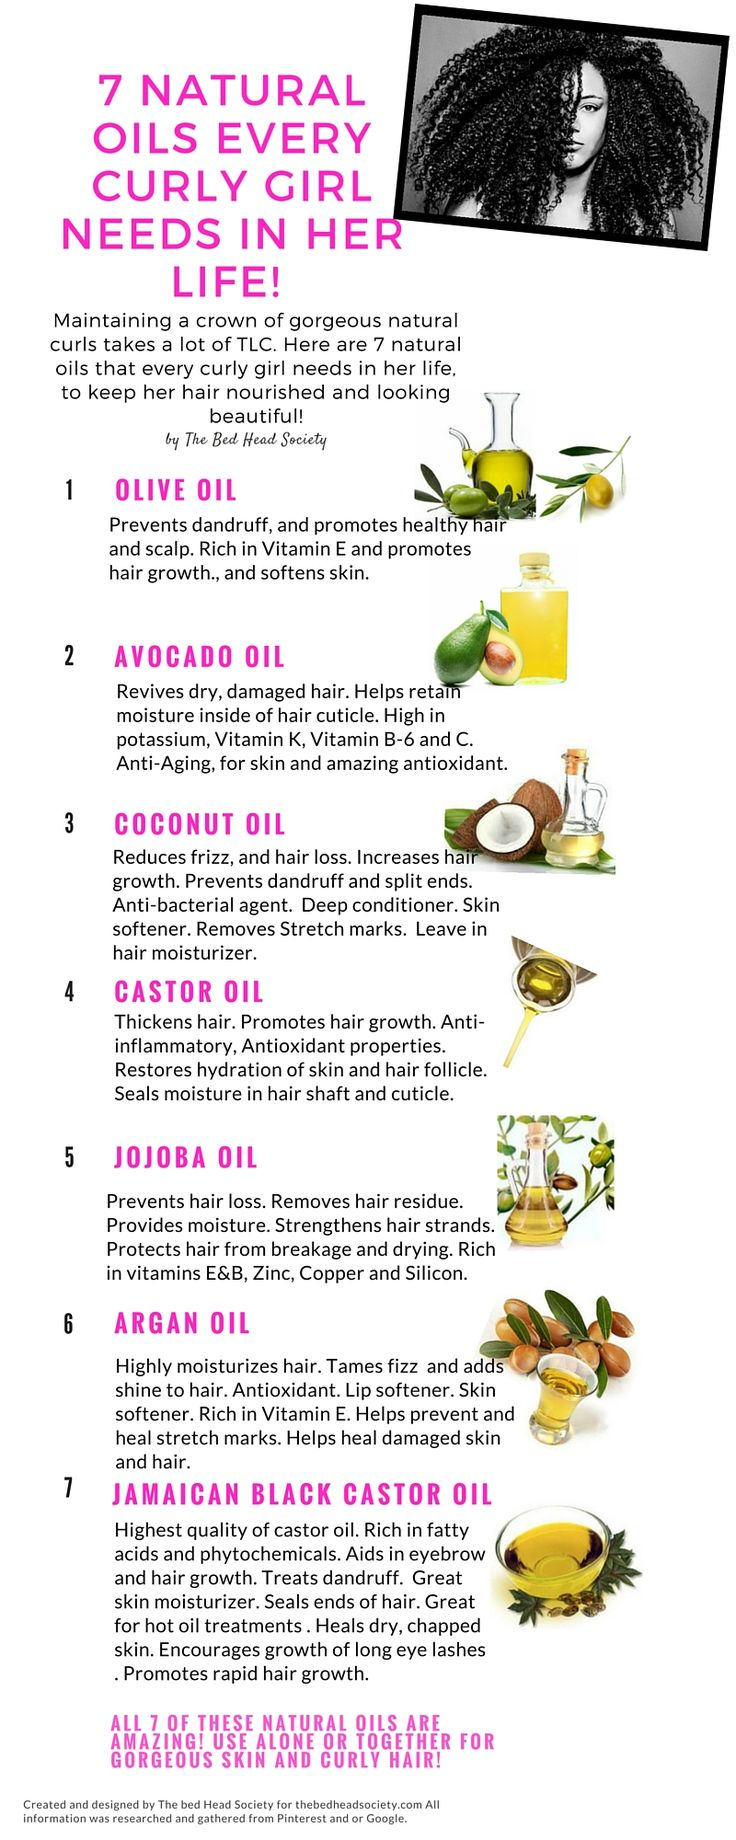 7 natural oils every curly girl needs we have found them and are ready to share them with you. These 7 natural oils every curly girl needs now!.